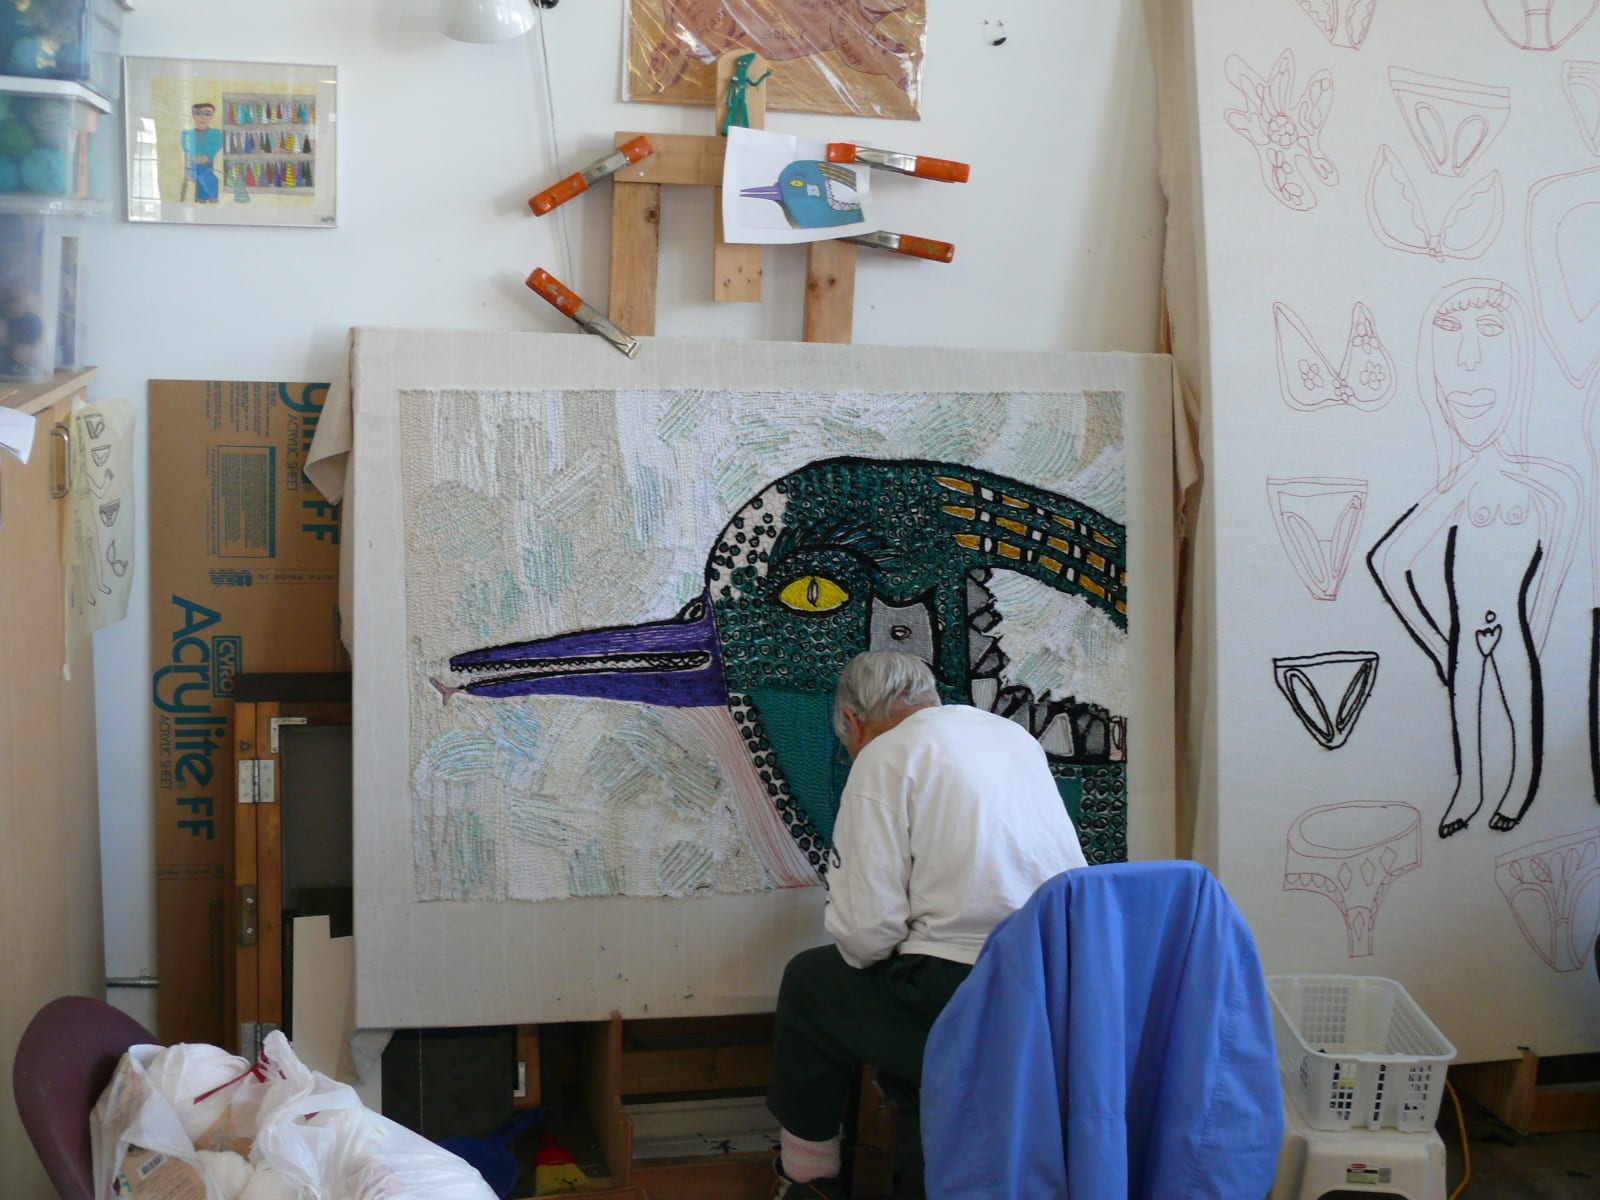 A Creative Growth artist works on a rug designed by Valerie Tribble, a rug designed by Juan Aguilera is visible at the right.